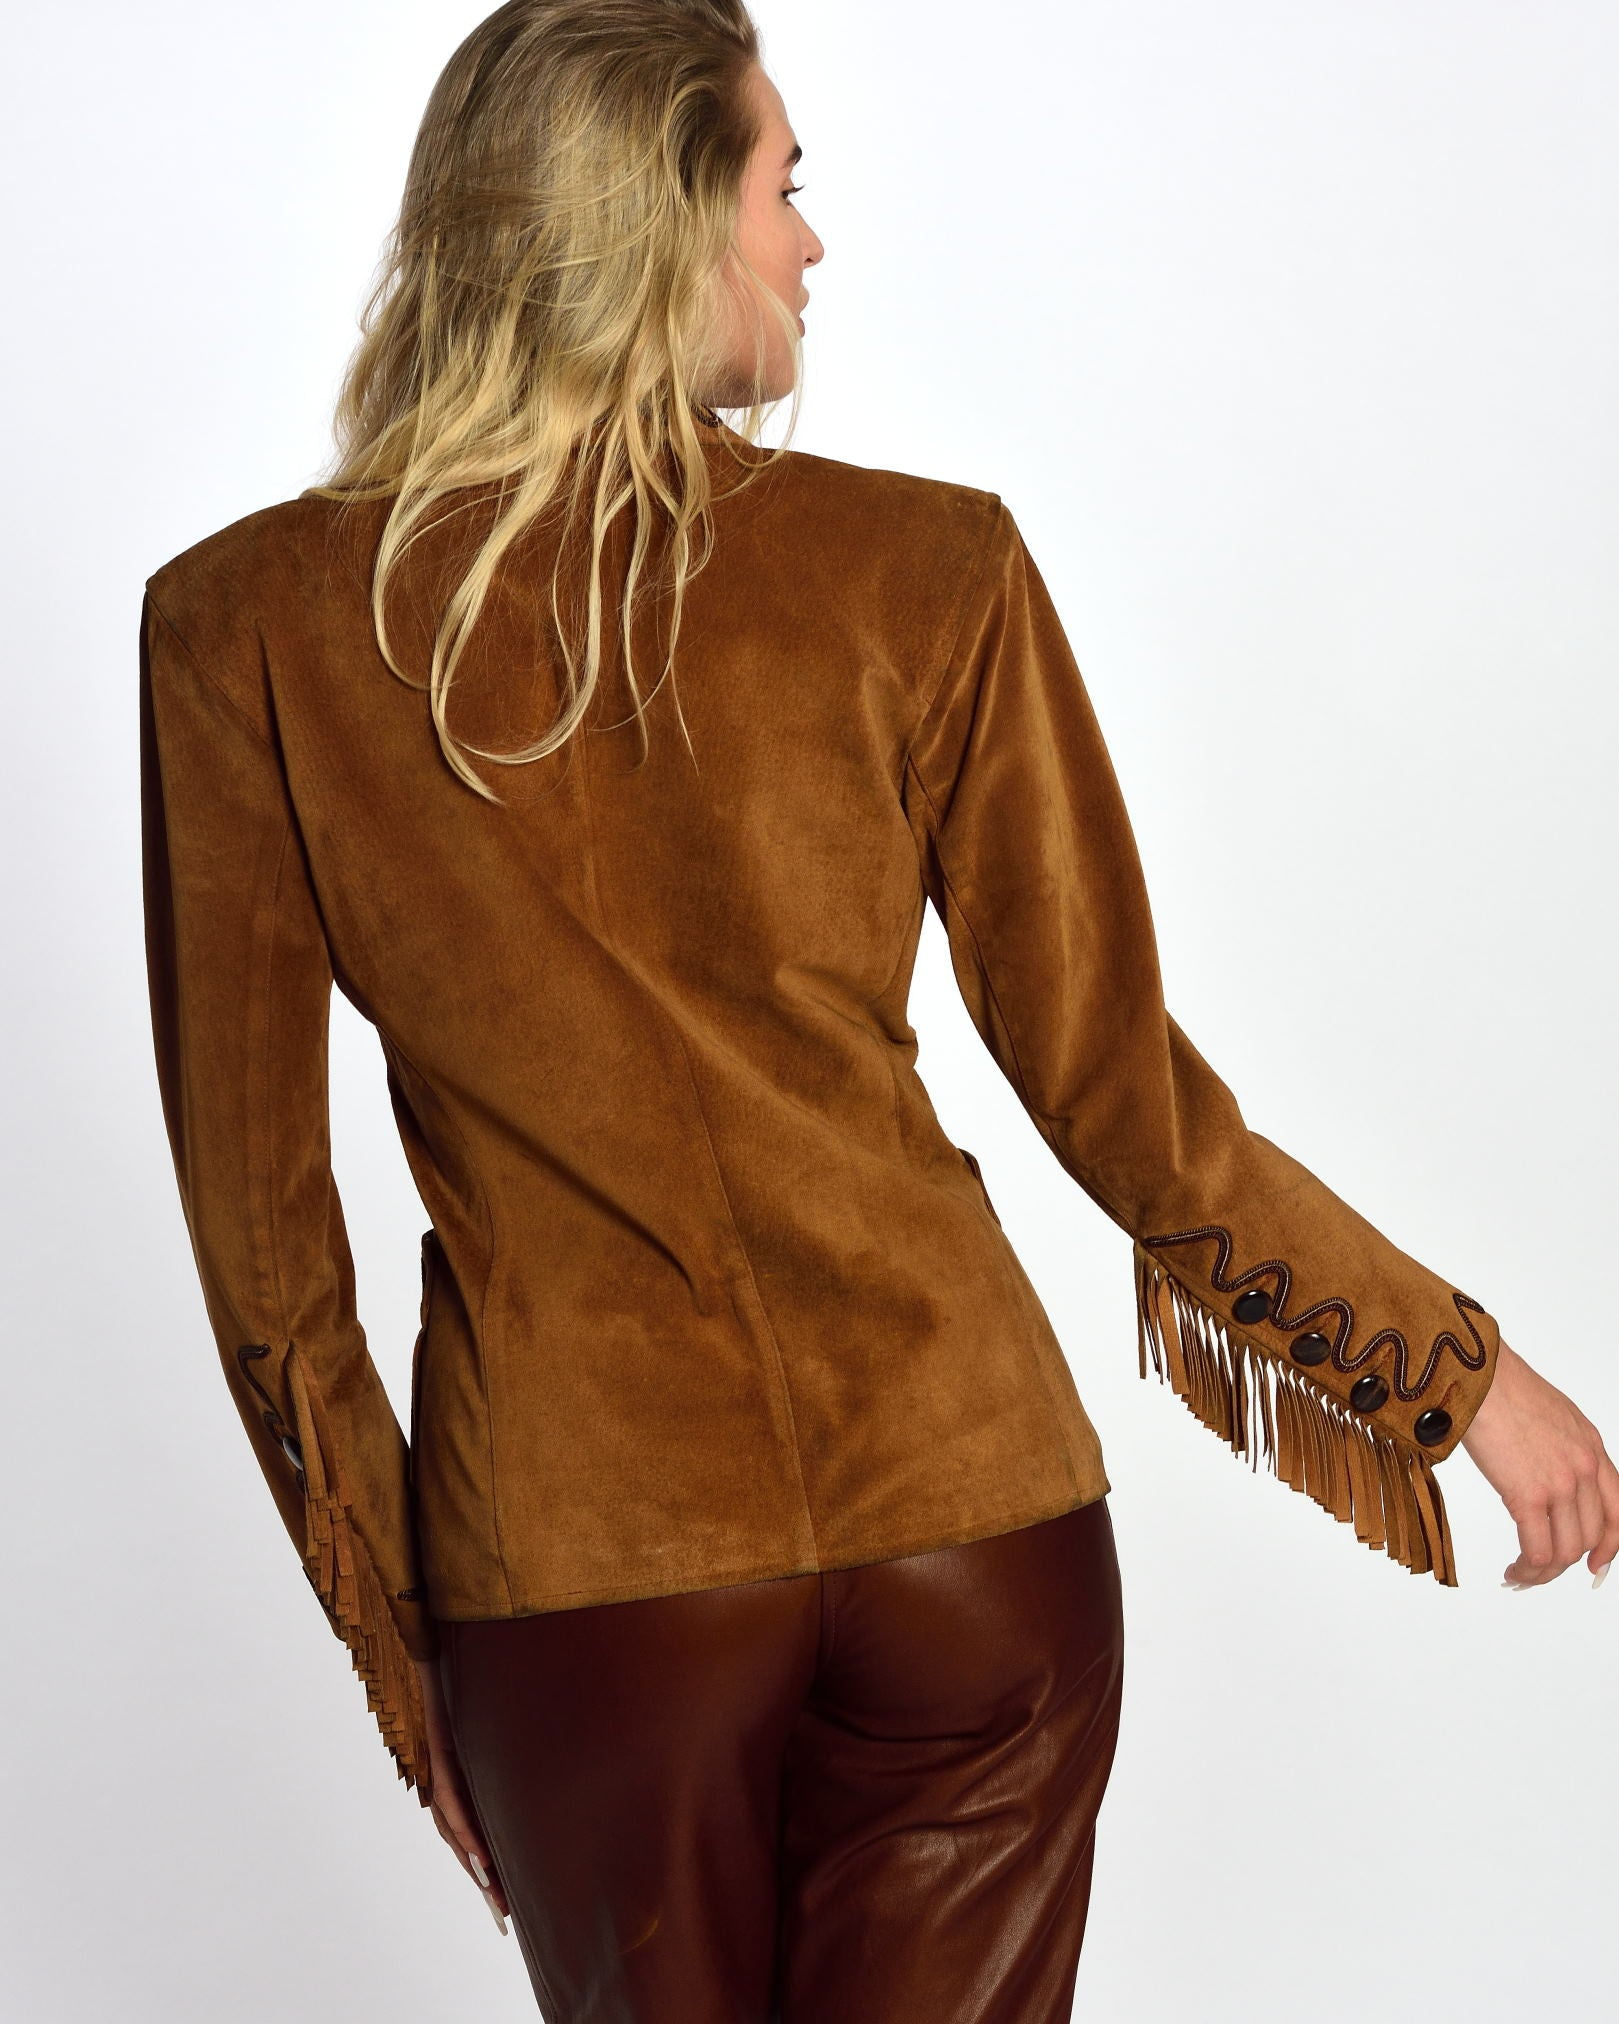 YVES SAINT LAURENT Brown Suede Leather Fringe Jacket